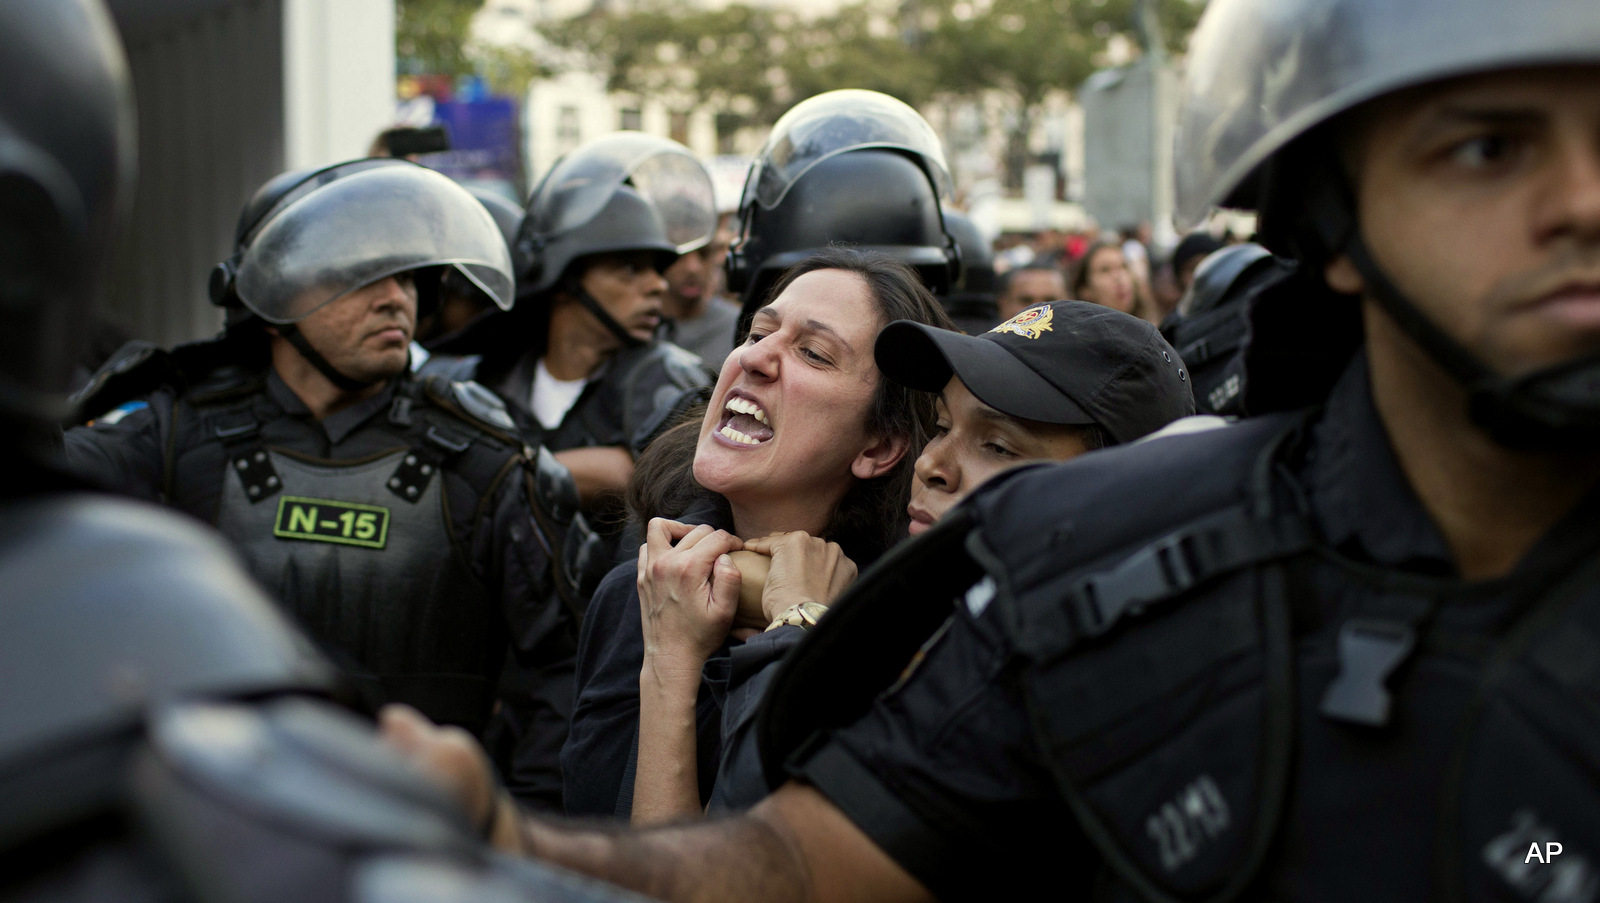 A demonstrator is taken away by riot police during a protest against the money spent on the Rio's 2016 Summer Olympics on the route of the olympic torch in Niteroi, Brazil, Tuesday, Aug. 2, 2016. The three-month torch relay across Brazil will end at the opening ceremony on Aug. 5, in Rio de Janeiro's Maracana stadium.